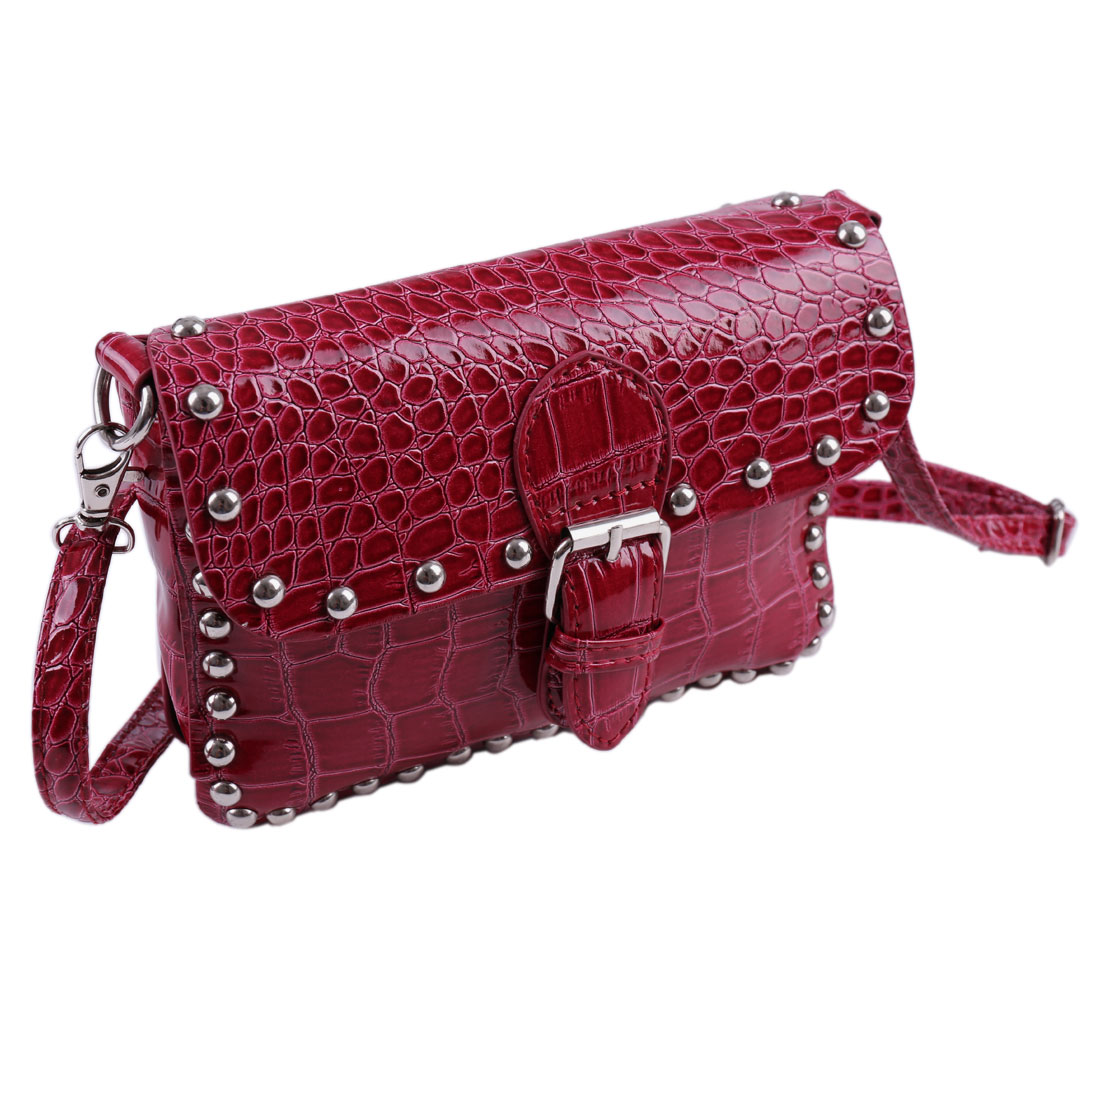 Woman Stud Decor Crocodile Pattern Faux Leather Shoulder Bag Burgundy w Strap